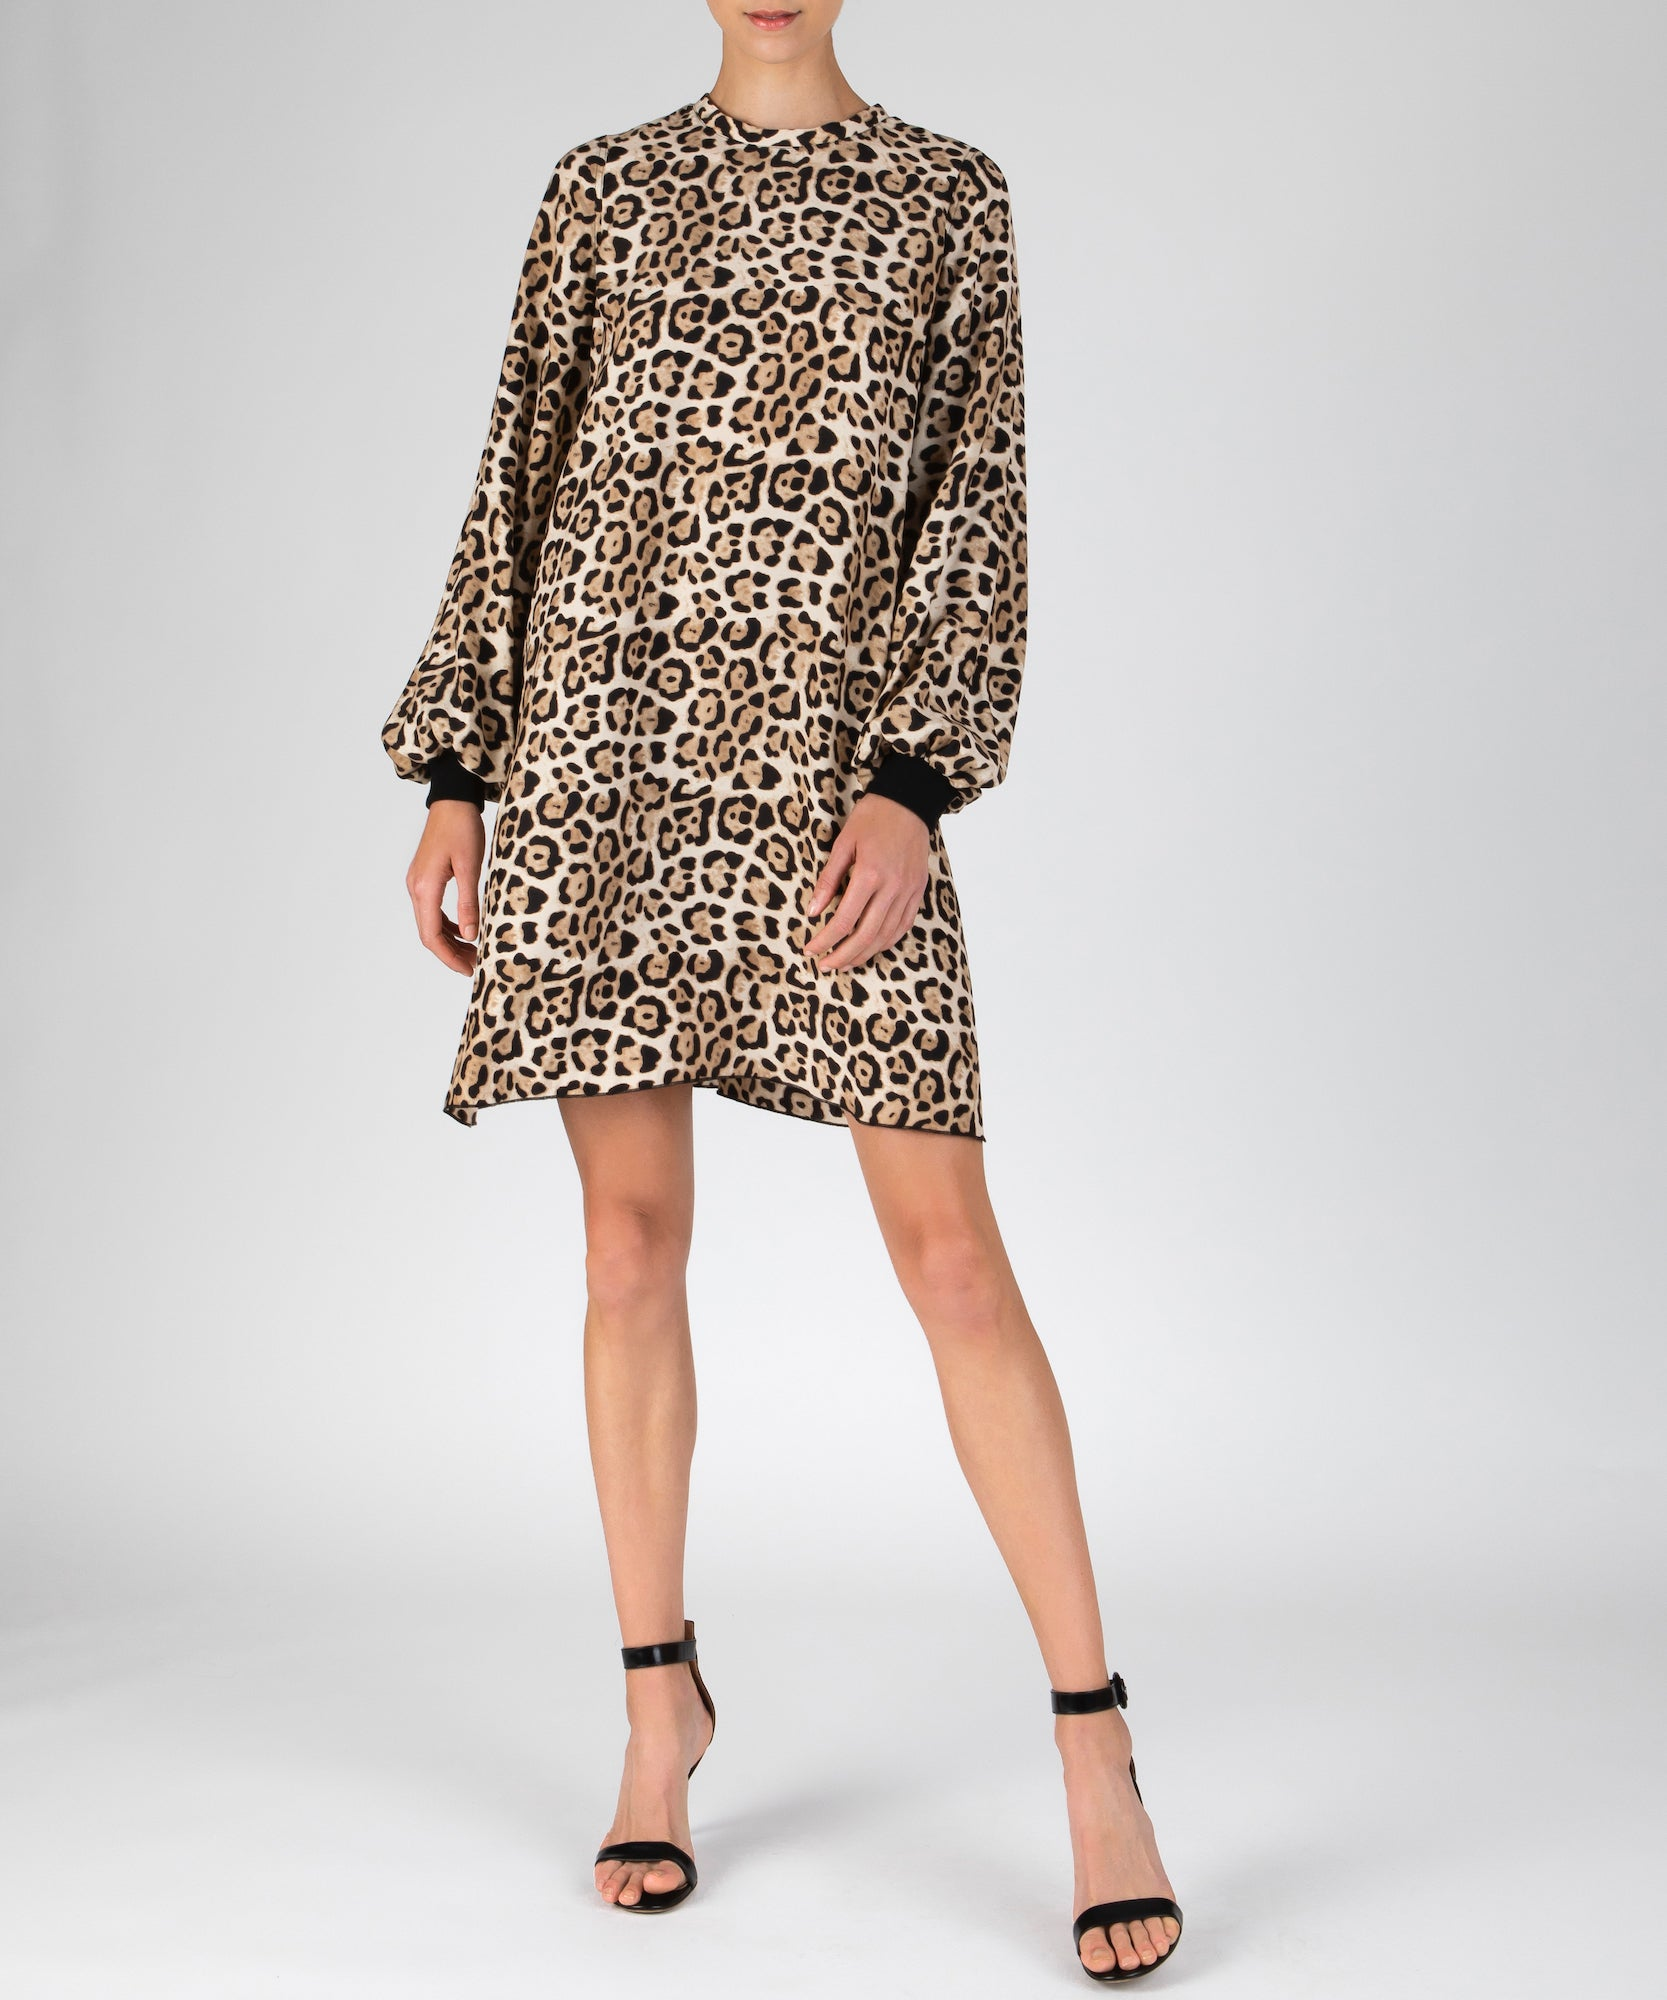 Leopard Silk Charmeuse Bishop Sleeve Mini Dress - Women's Silk Dress by ATM Anthony Thomas Melillo